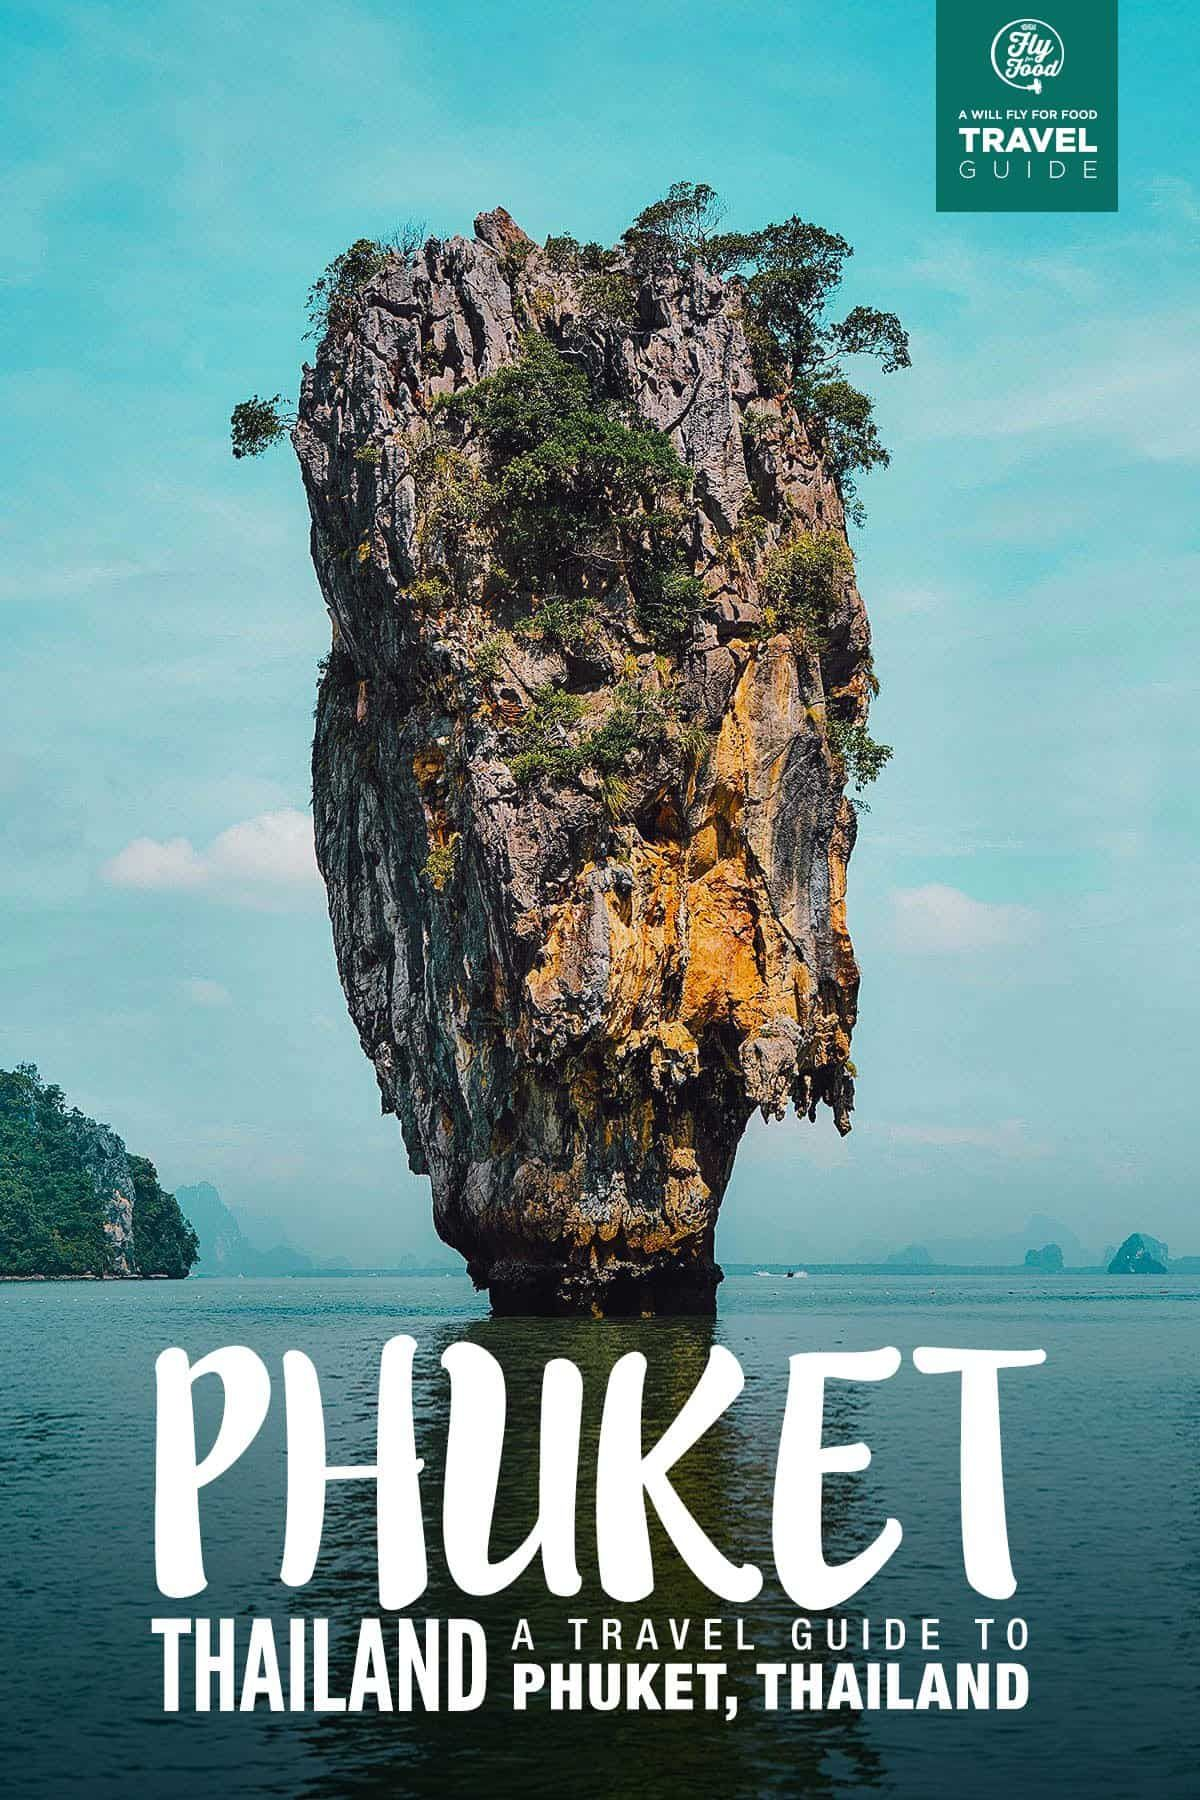 , Phuket Travel Guide: A Detailed Visitor's Guide to Phuket, Thailand, My Travels Blog 2020, My Travels Blog 2020